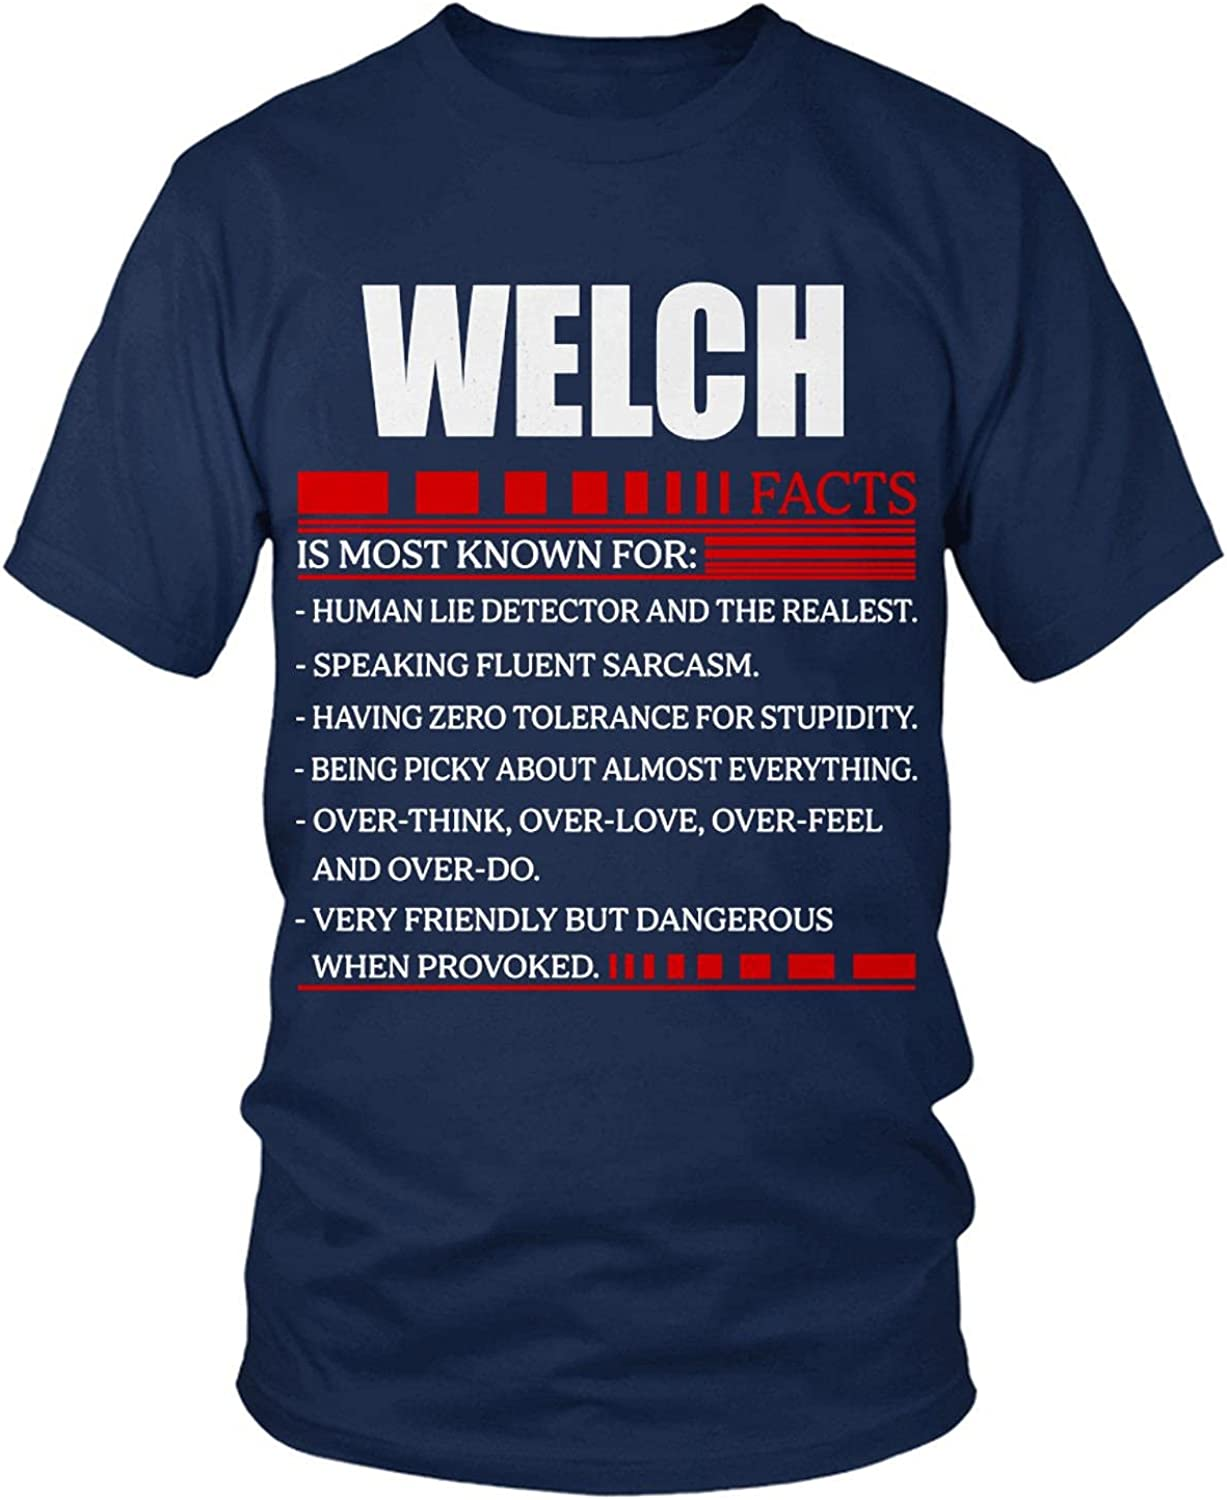 Arlington Mall Selling rankings IMIZI Welch Shirt for Sale Gifts 42 Tshirt The